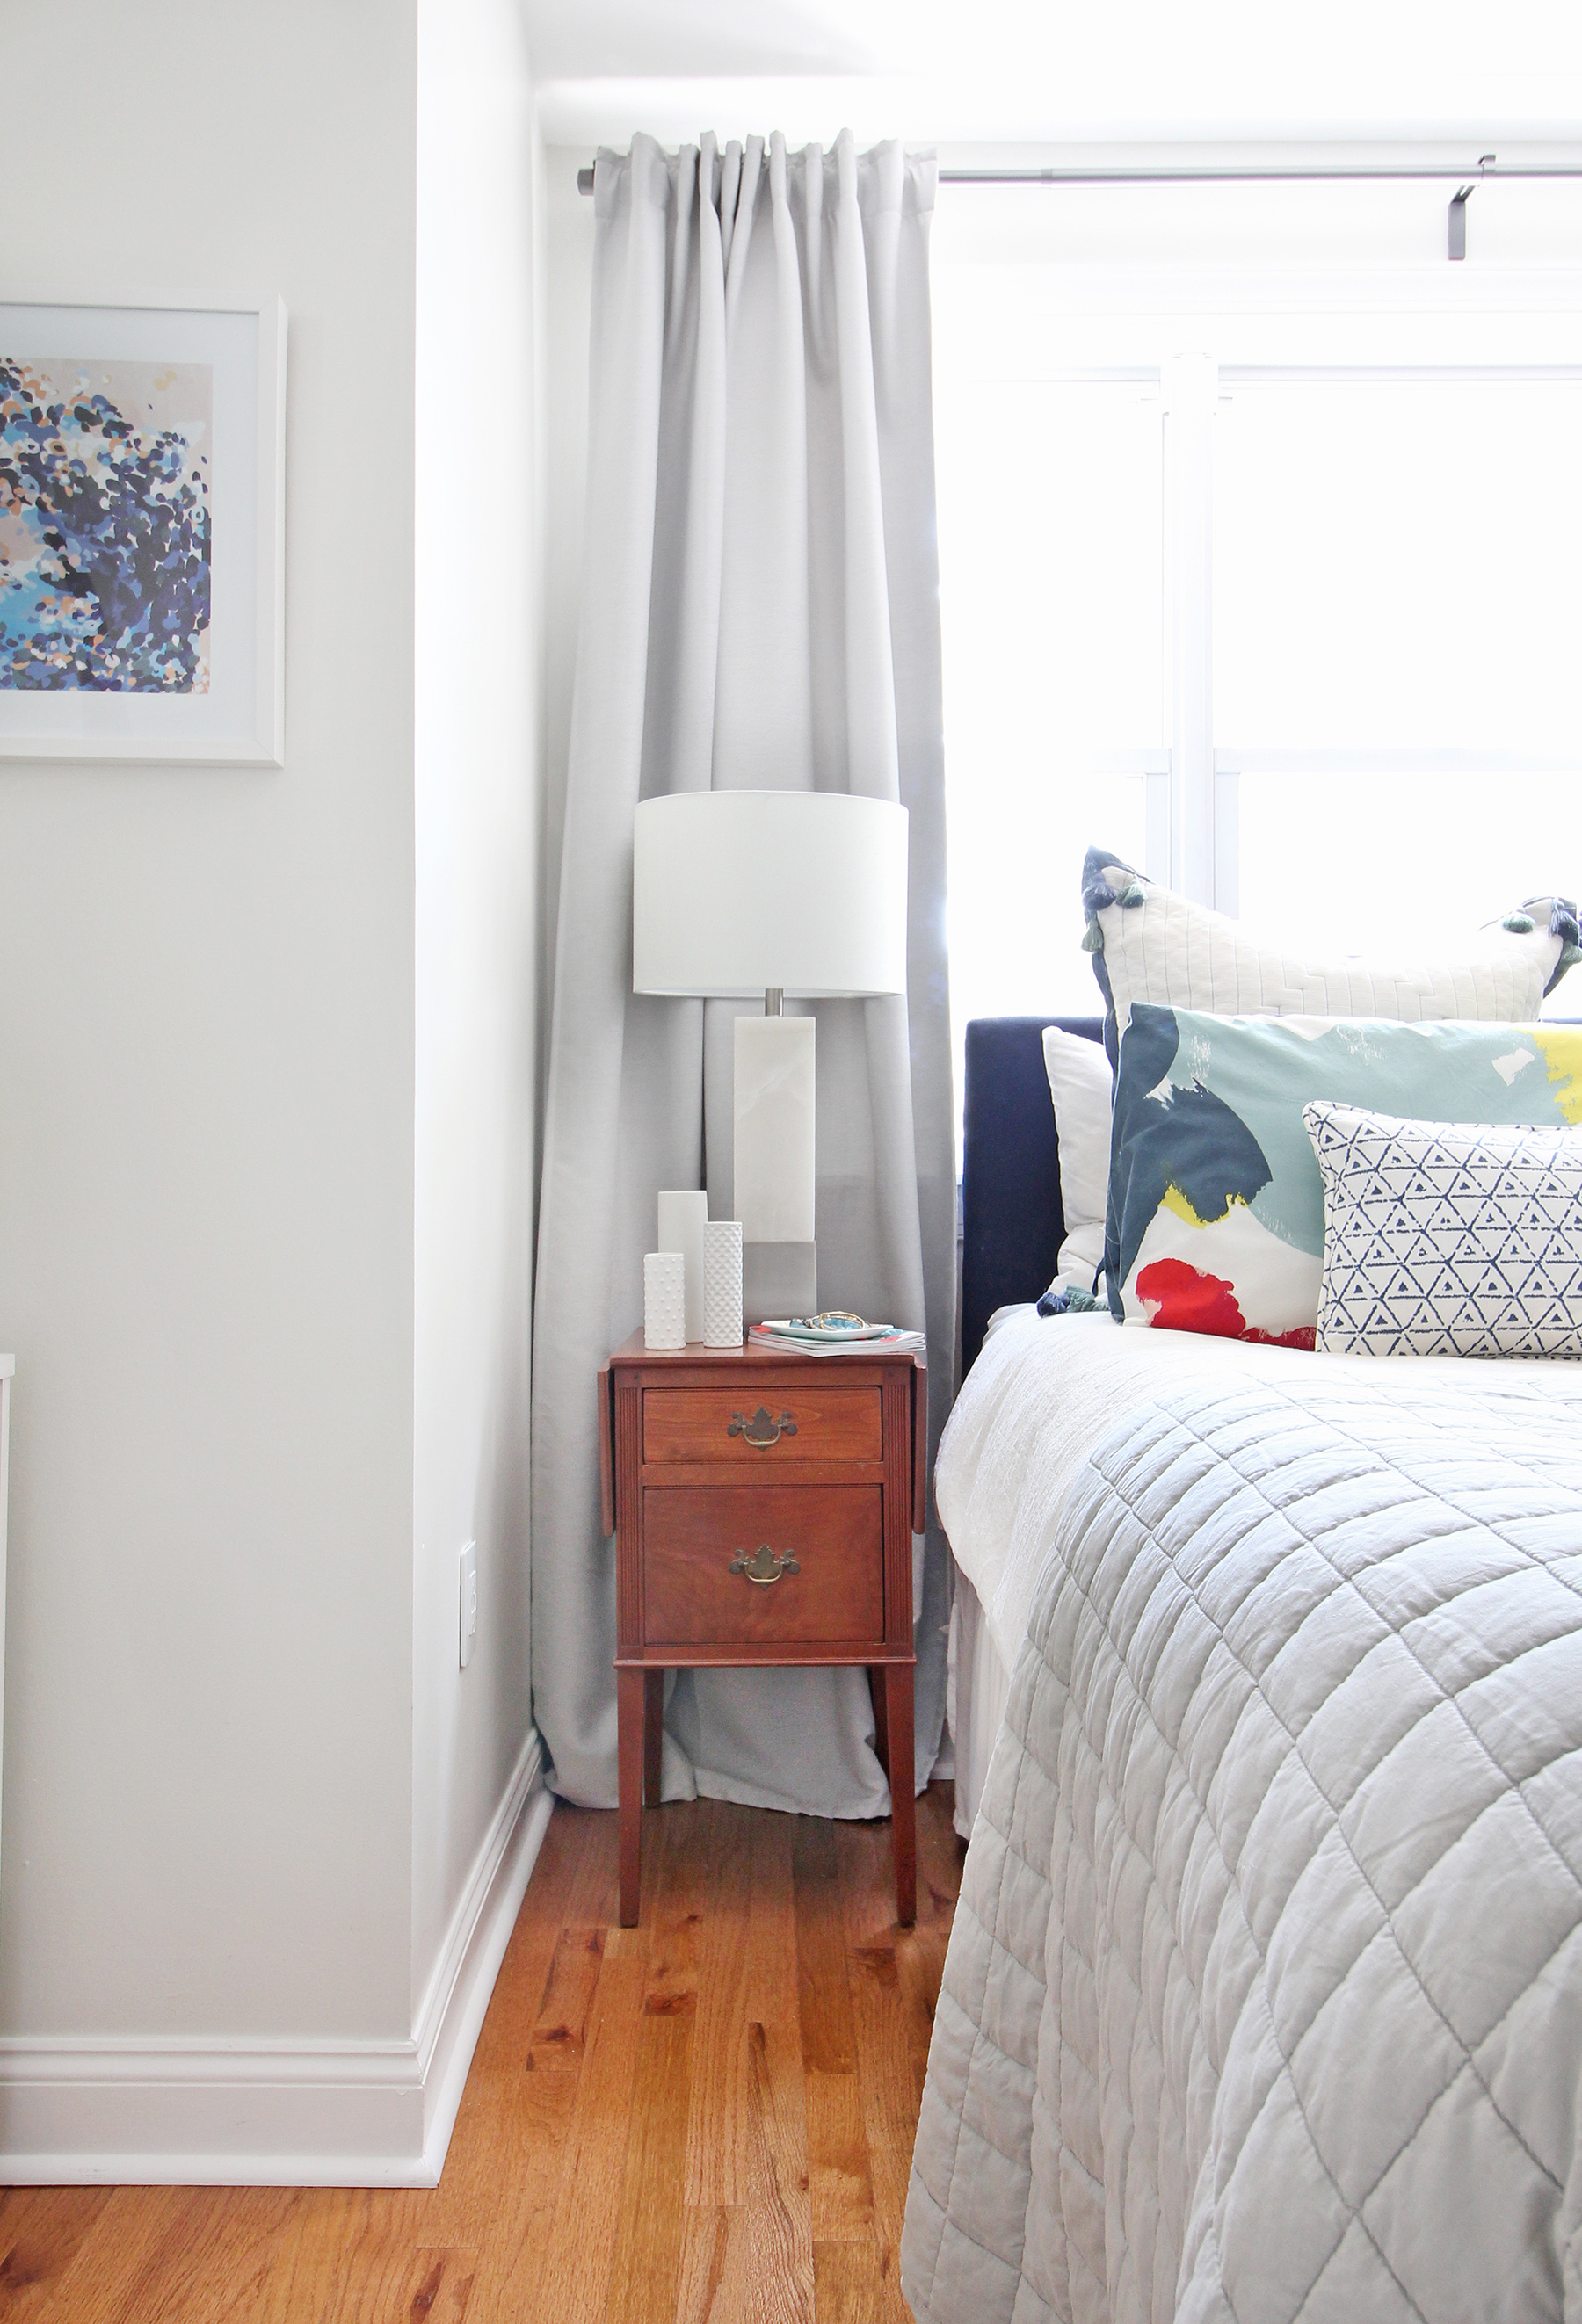 A 1930s row home in Philadelphia gets a big makeover. Come see the before and after of this home's bedrooms, small bathroom, and office/nursery nook. Get ideas for small space city living! Chaney's style is mid-century modern meets traditional that makes for an eclectic, cozy space.